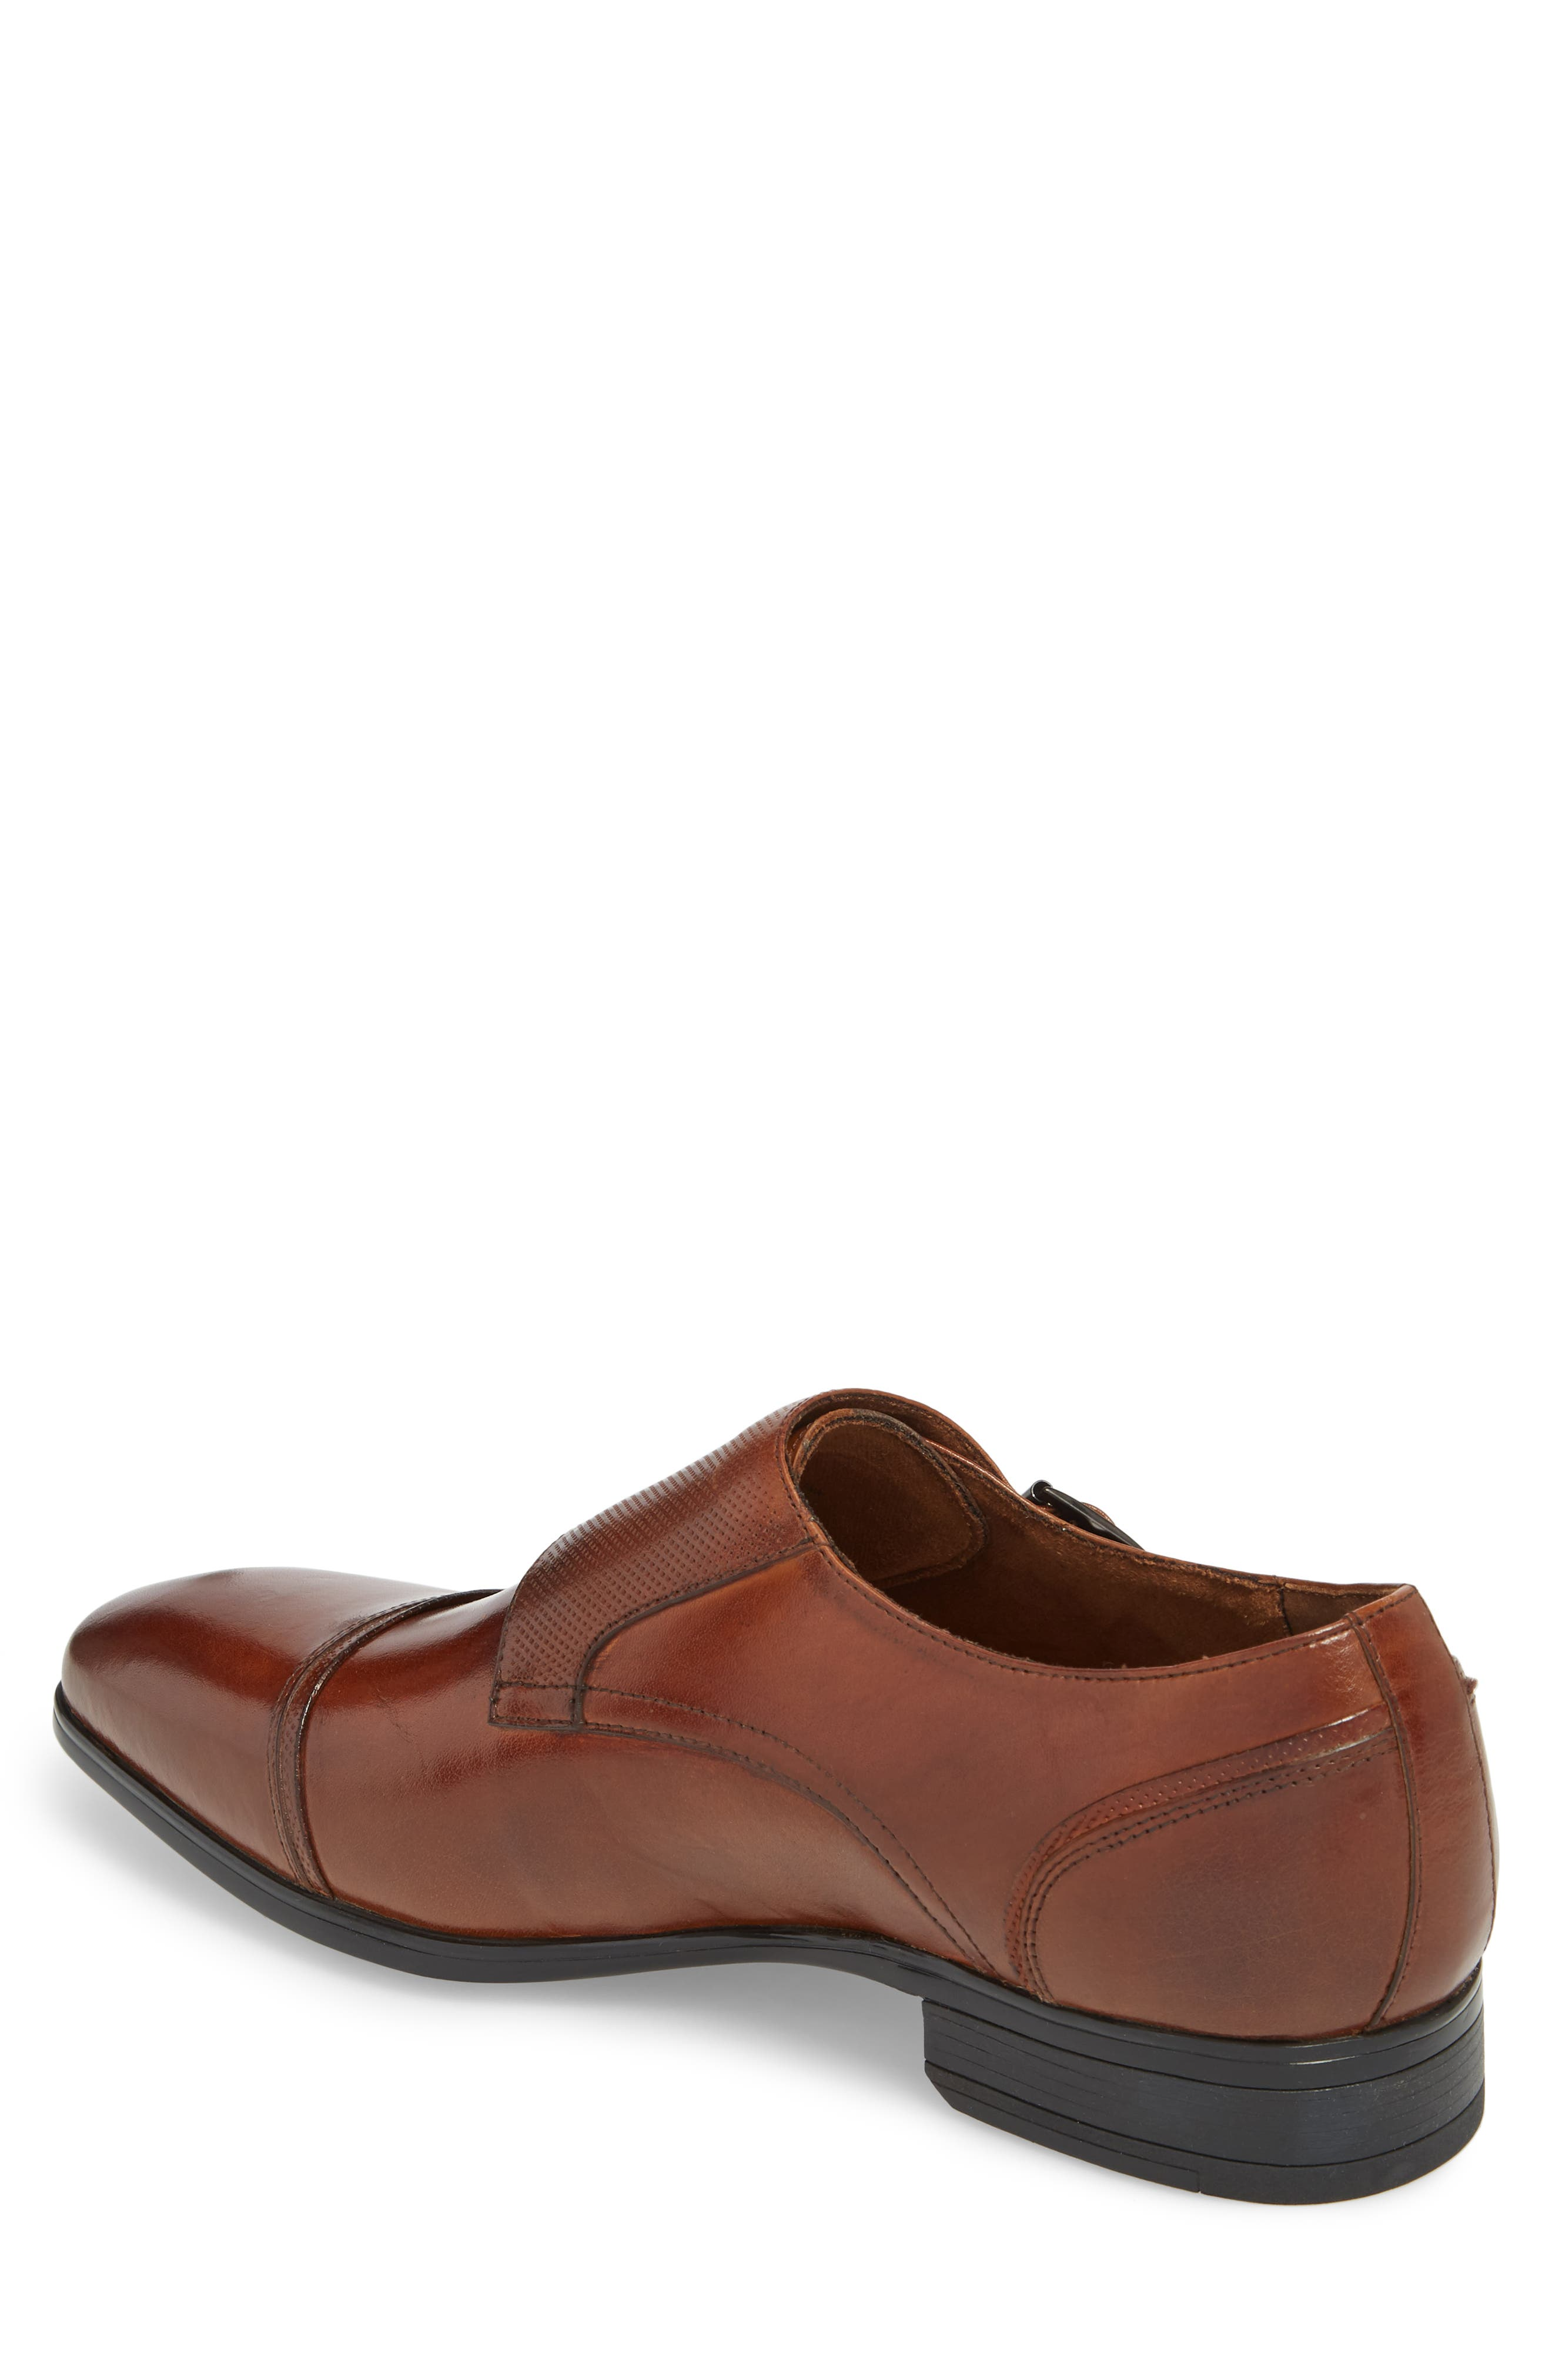 Oliver Cap Toe Monk Shoe,                             Alternate thumbnail 2, color,                             Cognac Leather